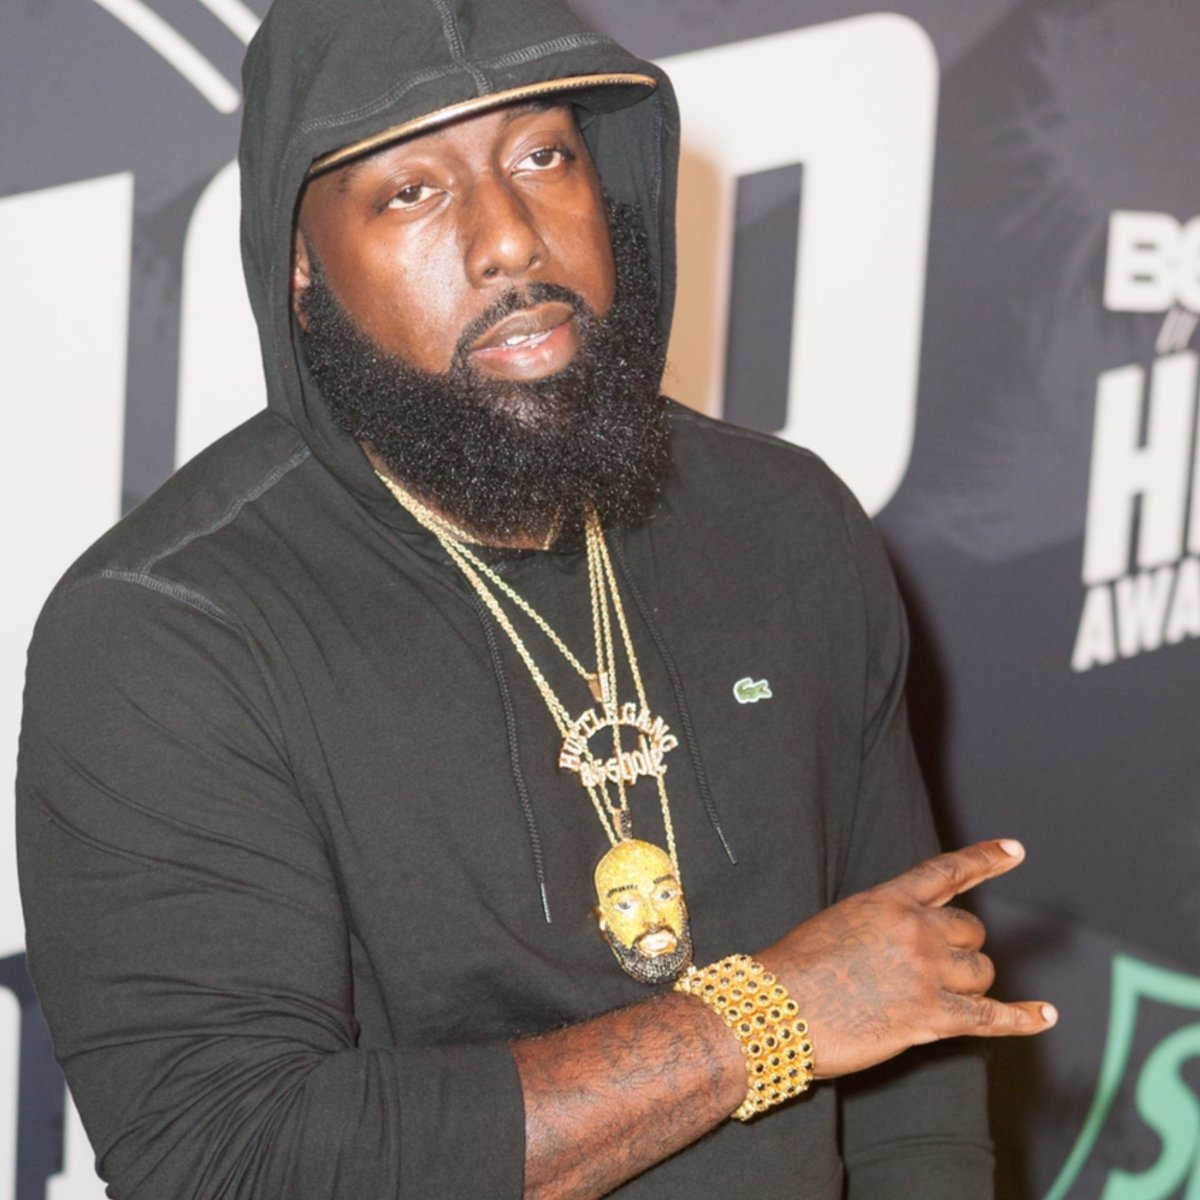 Happy Birthday goes out to #TraeThaTruth! Comment your favorite song of his below! 👇🎂🎈 @TRAEABN https://t.co/TzNAFaSwIa